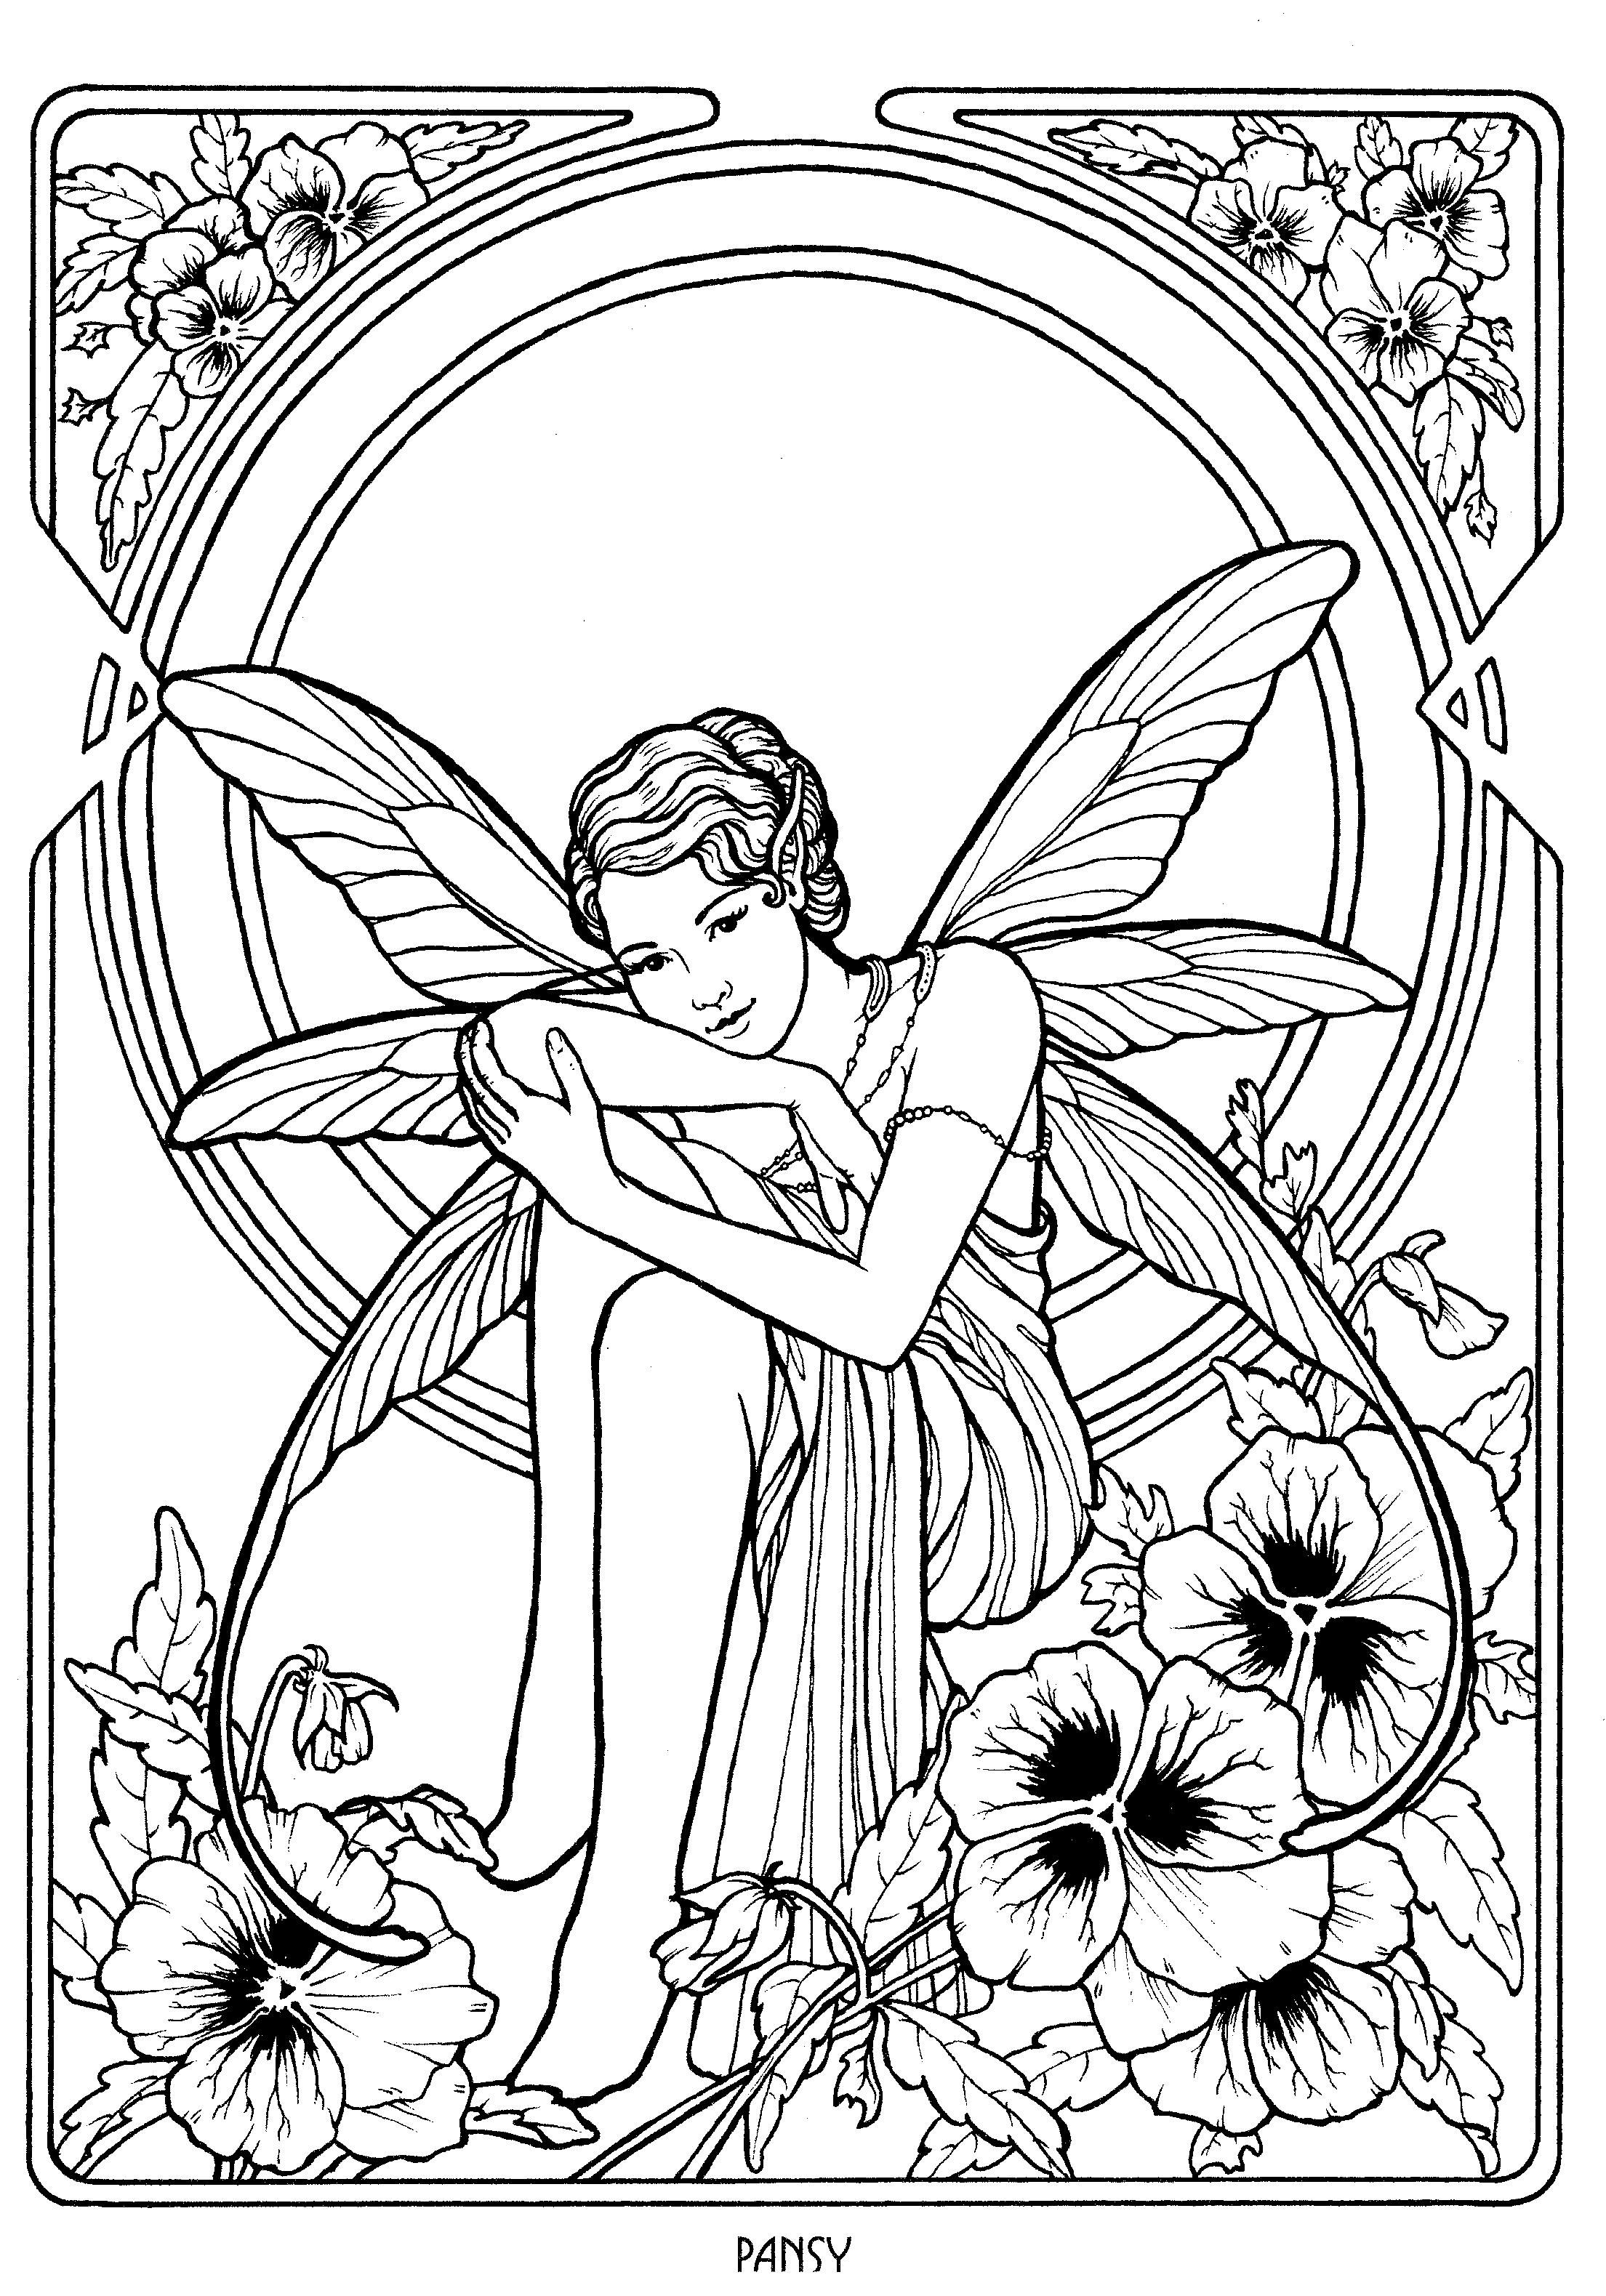 Fairy 20 | Fairy coloring pages, Fairy coloring book ...